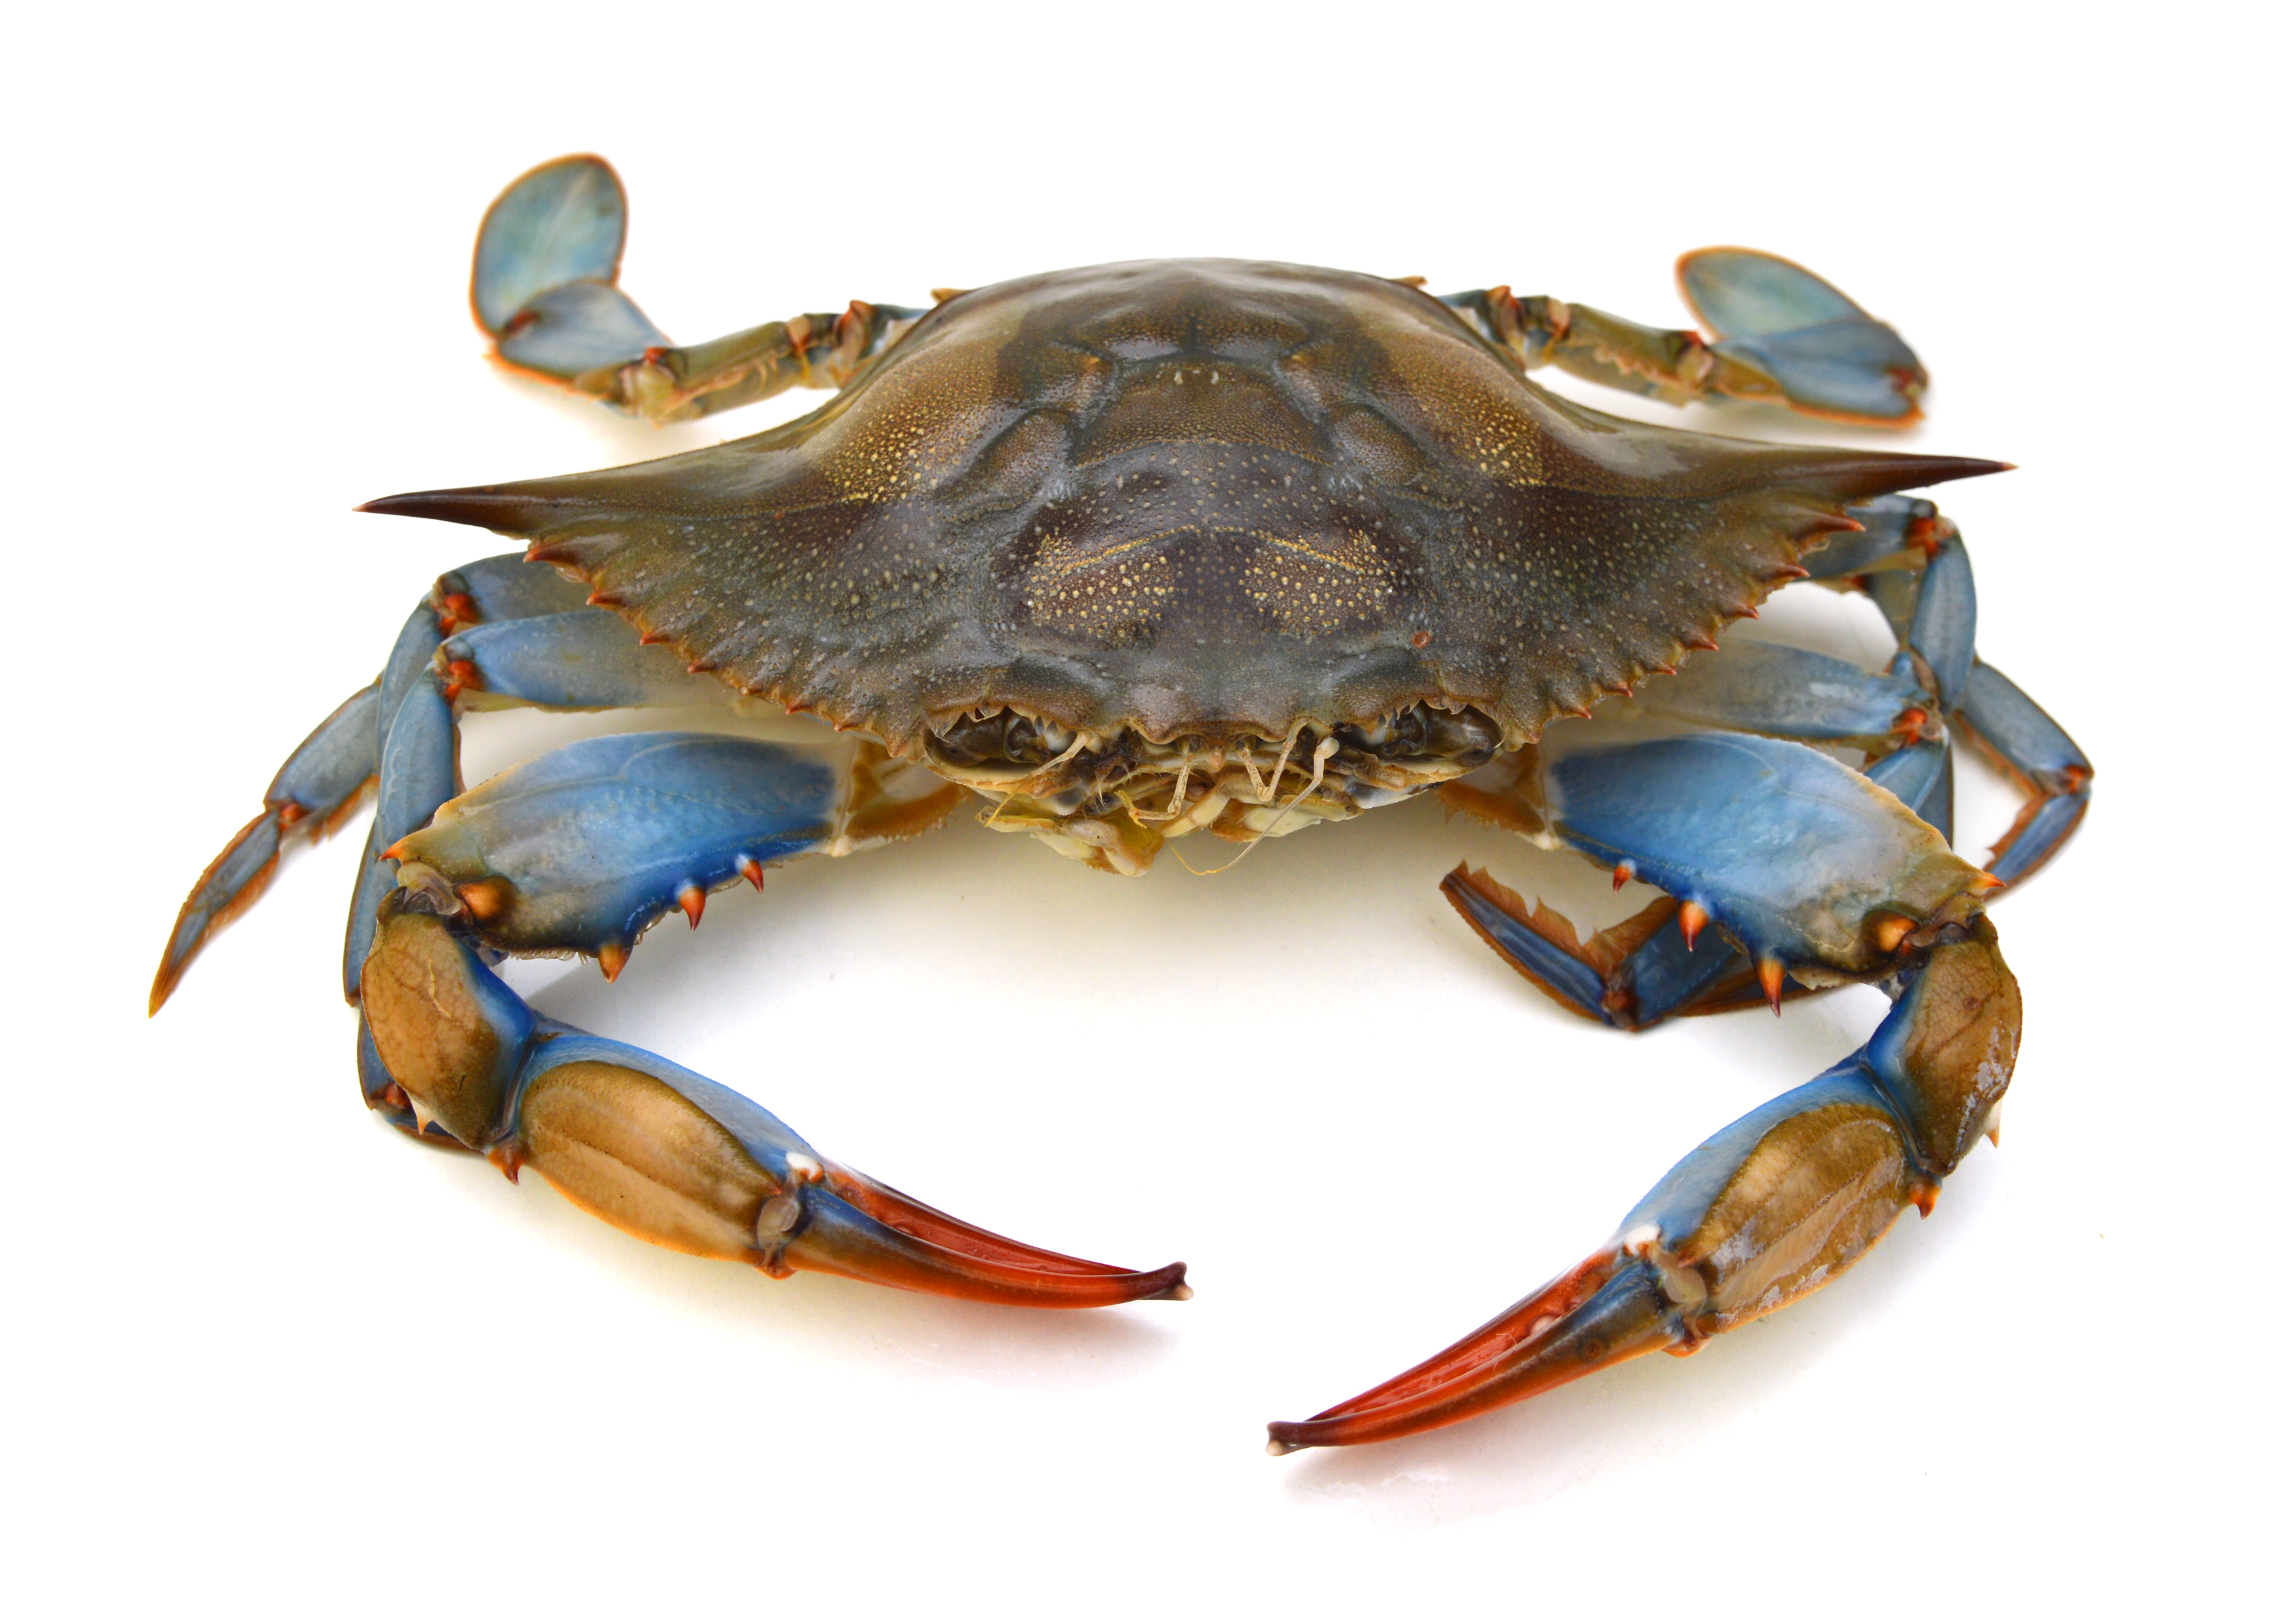 A Chesapeake Bay blue crab on a white background.